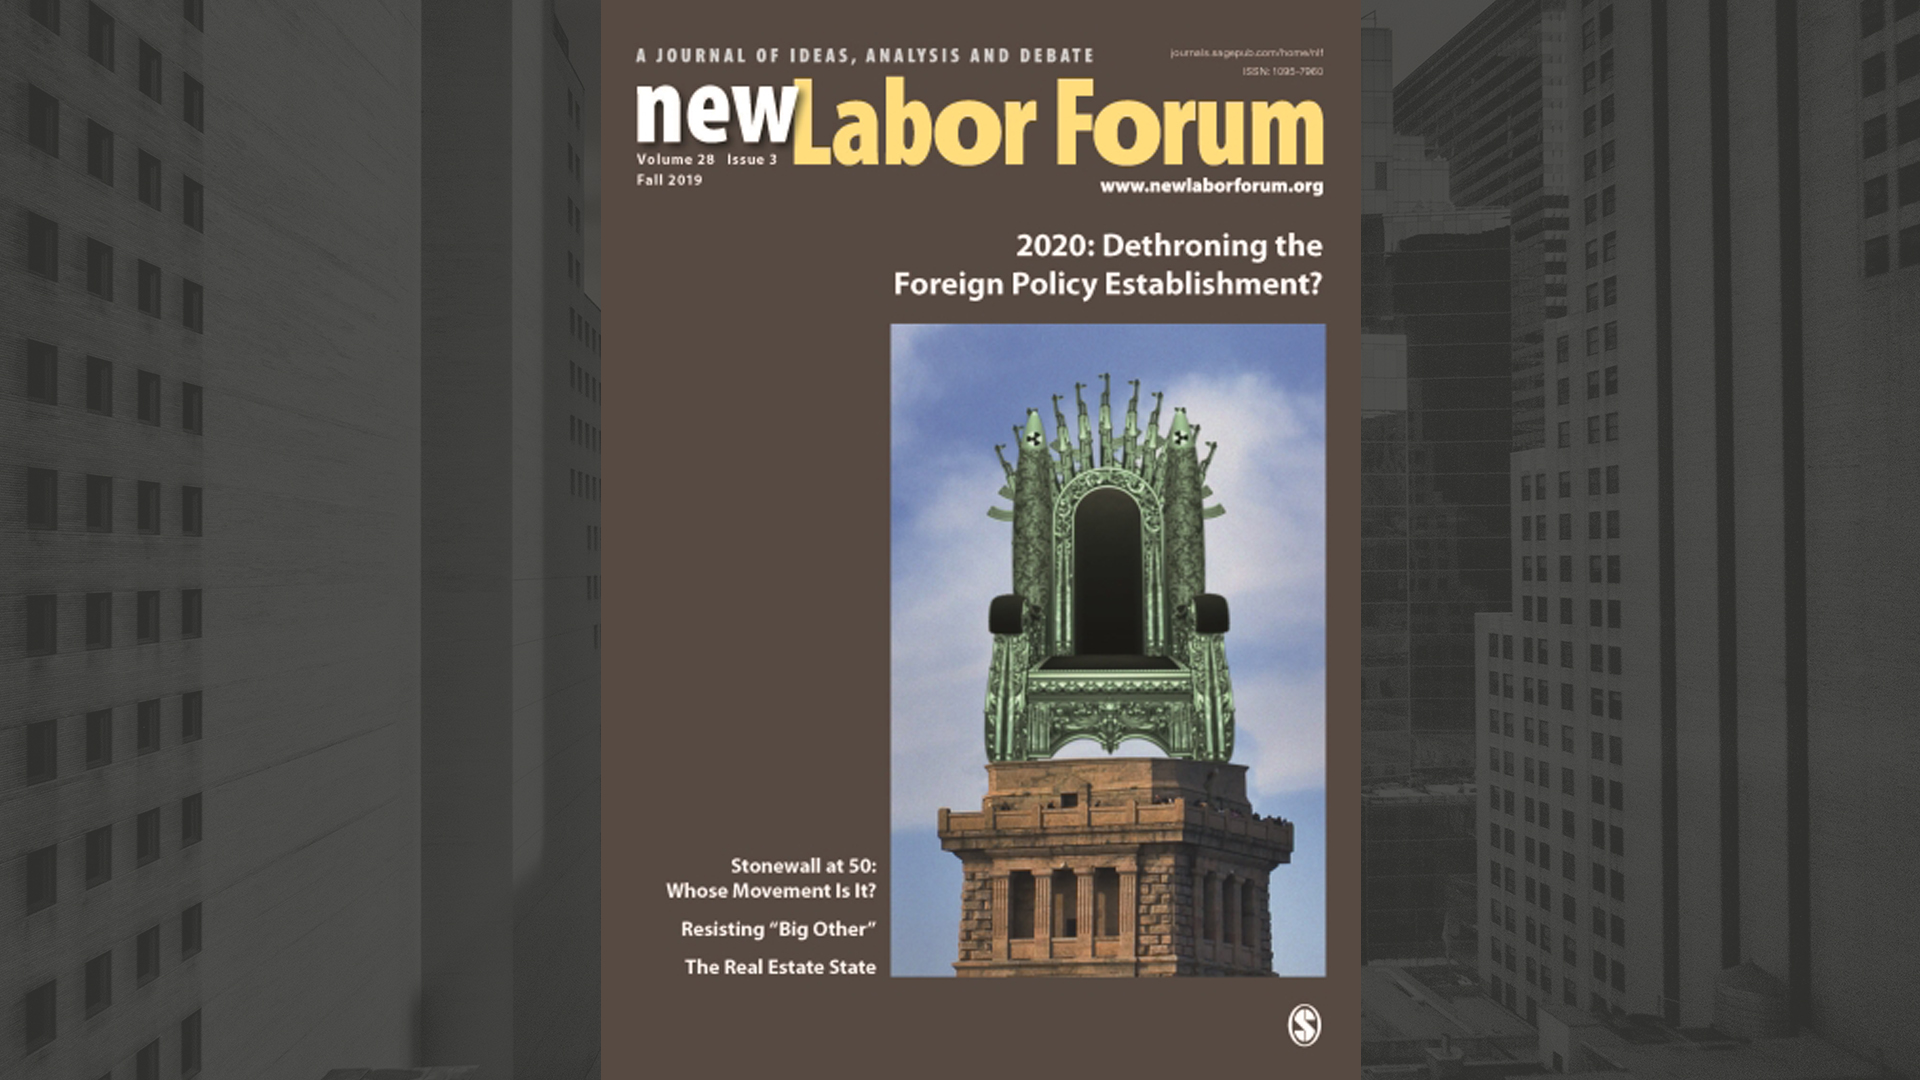 Cover of the New labor Forum showing the statue of liberty as throne made out of missile